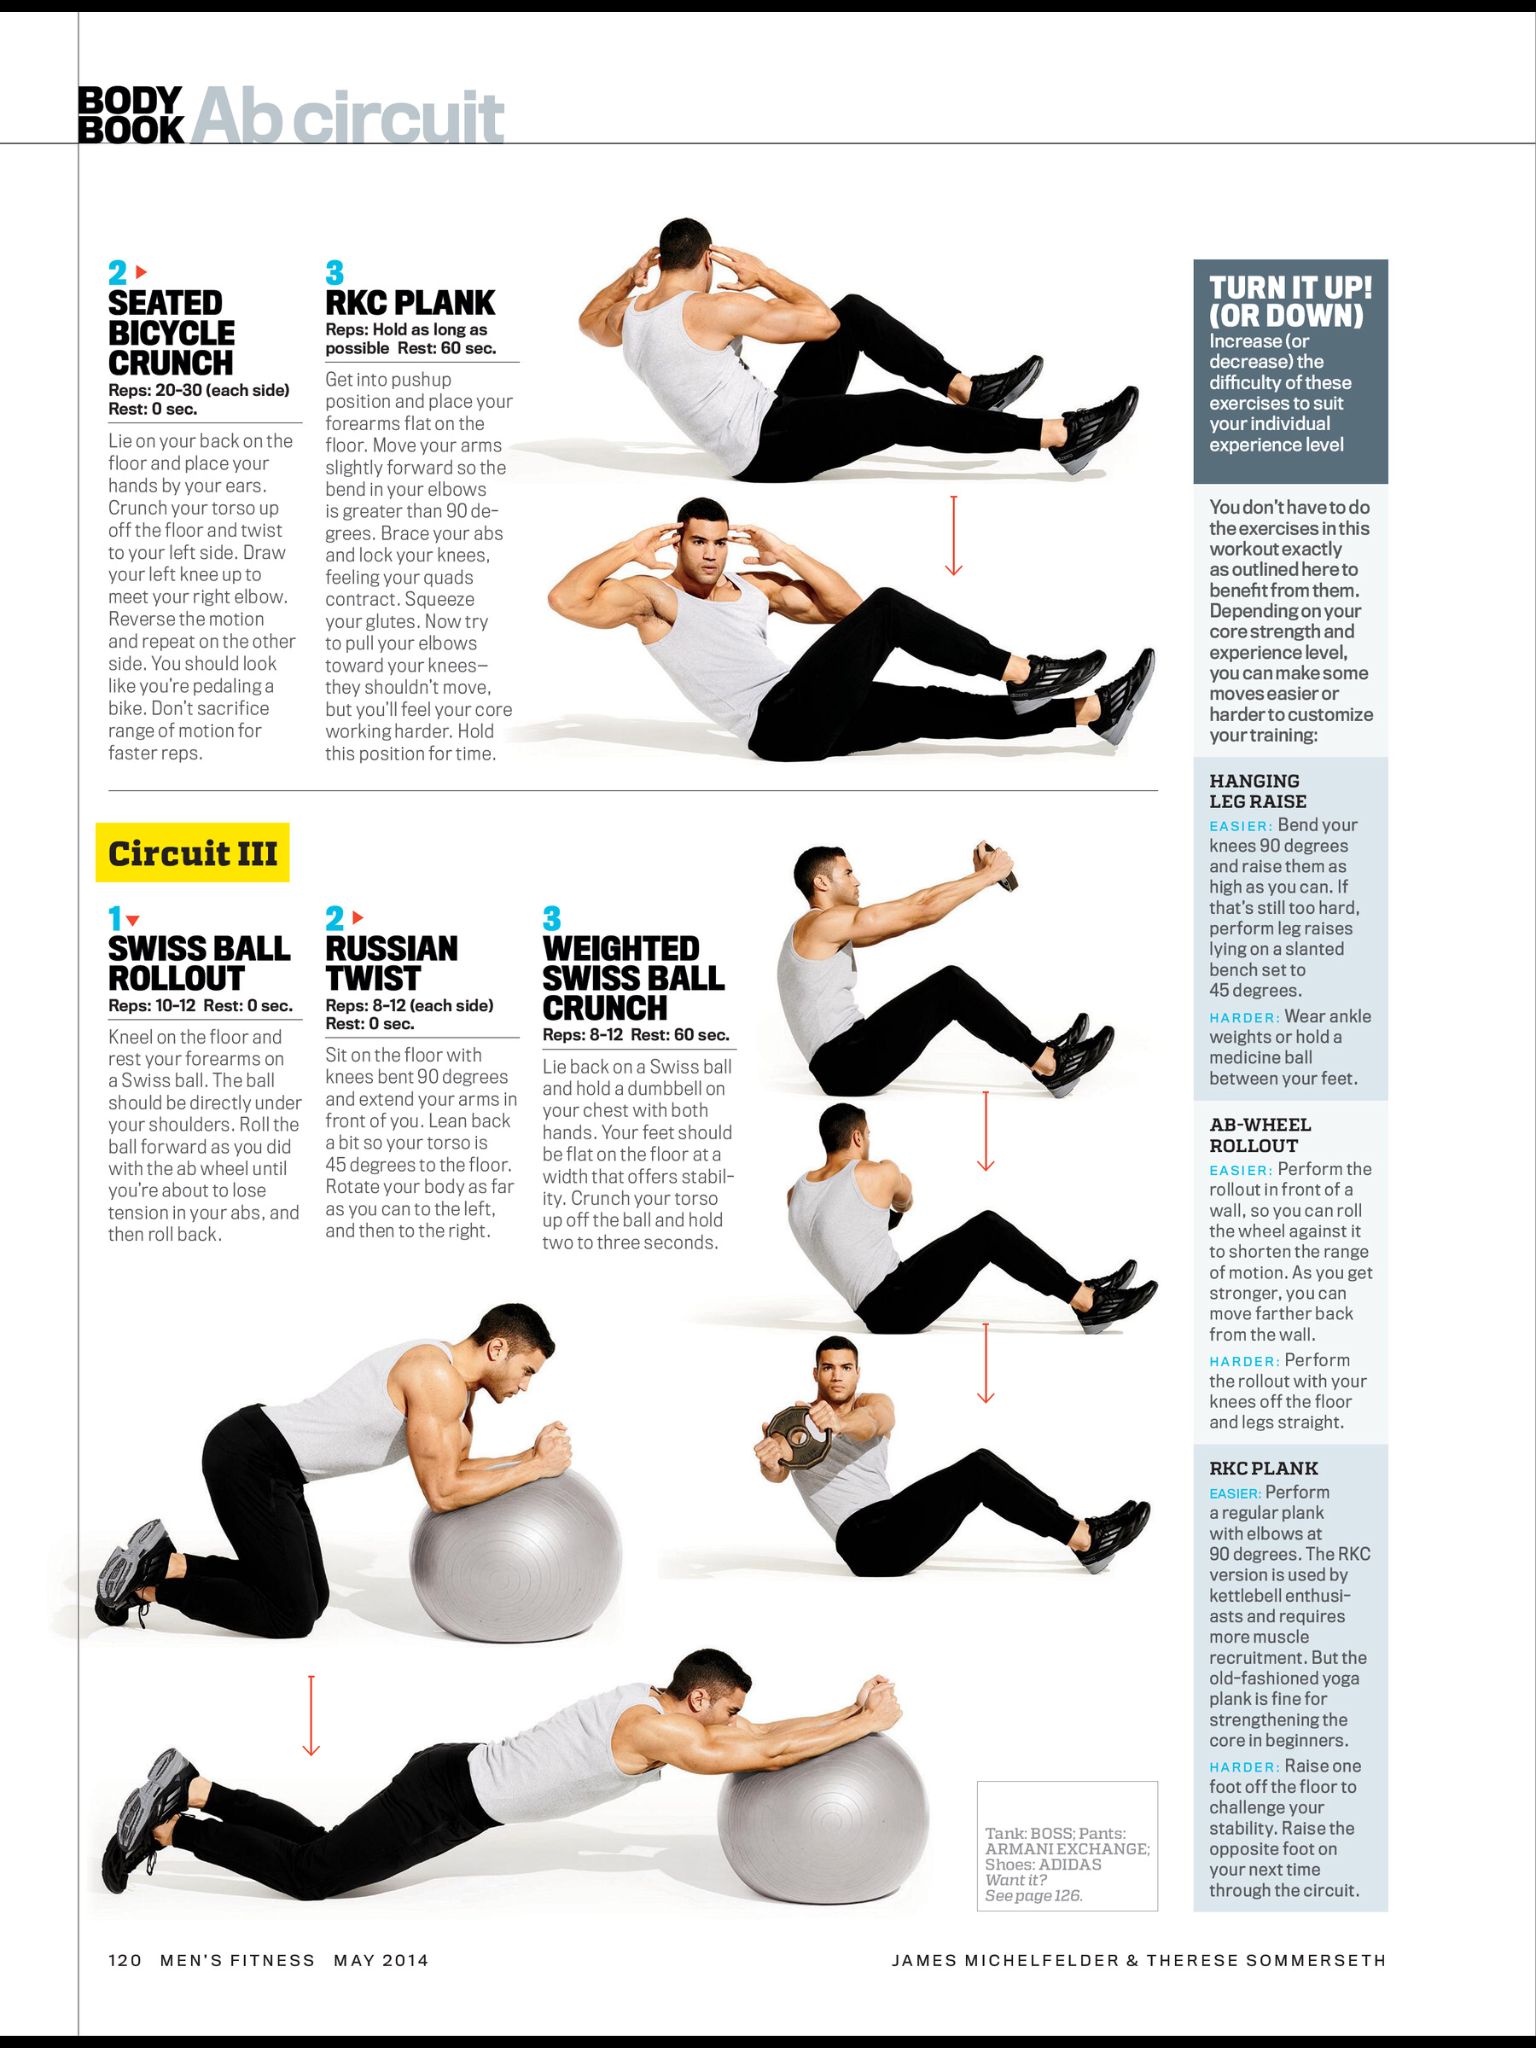 Ab Circuit Seated Bicycle Crunch Rkc Plank Swiss Ball Rollout